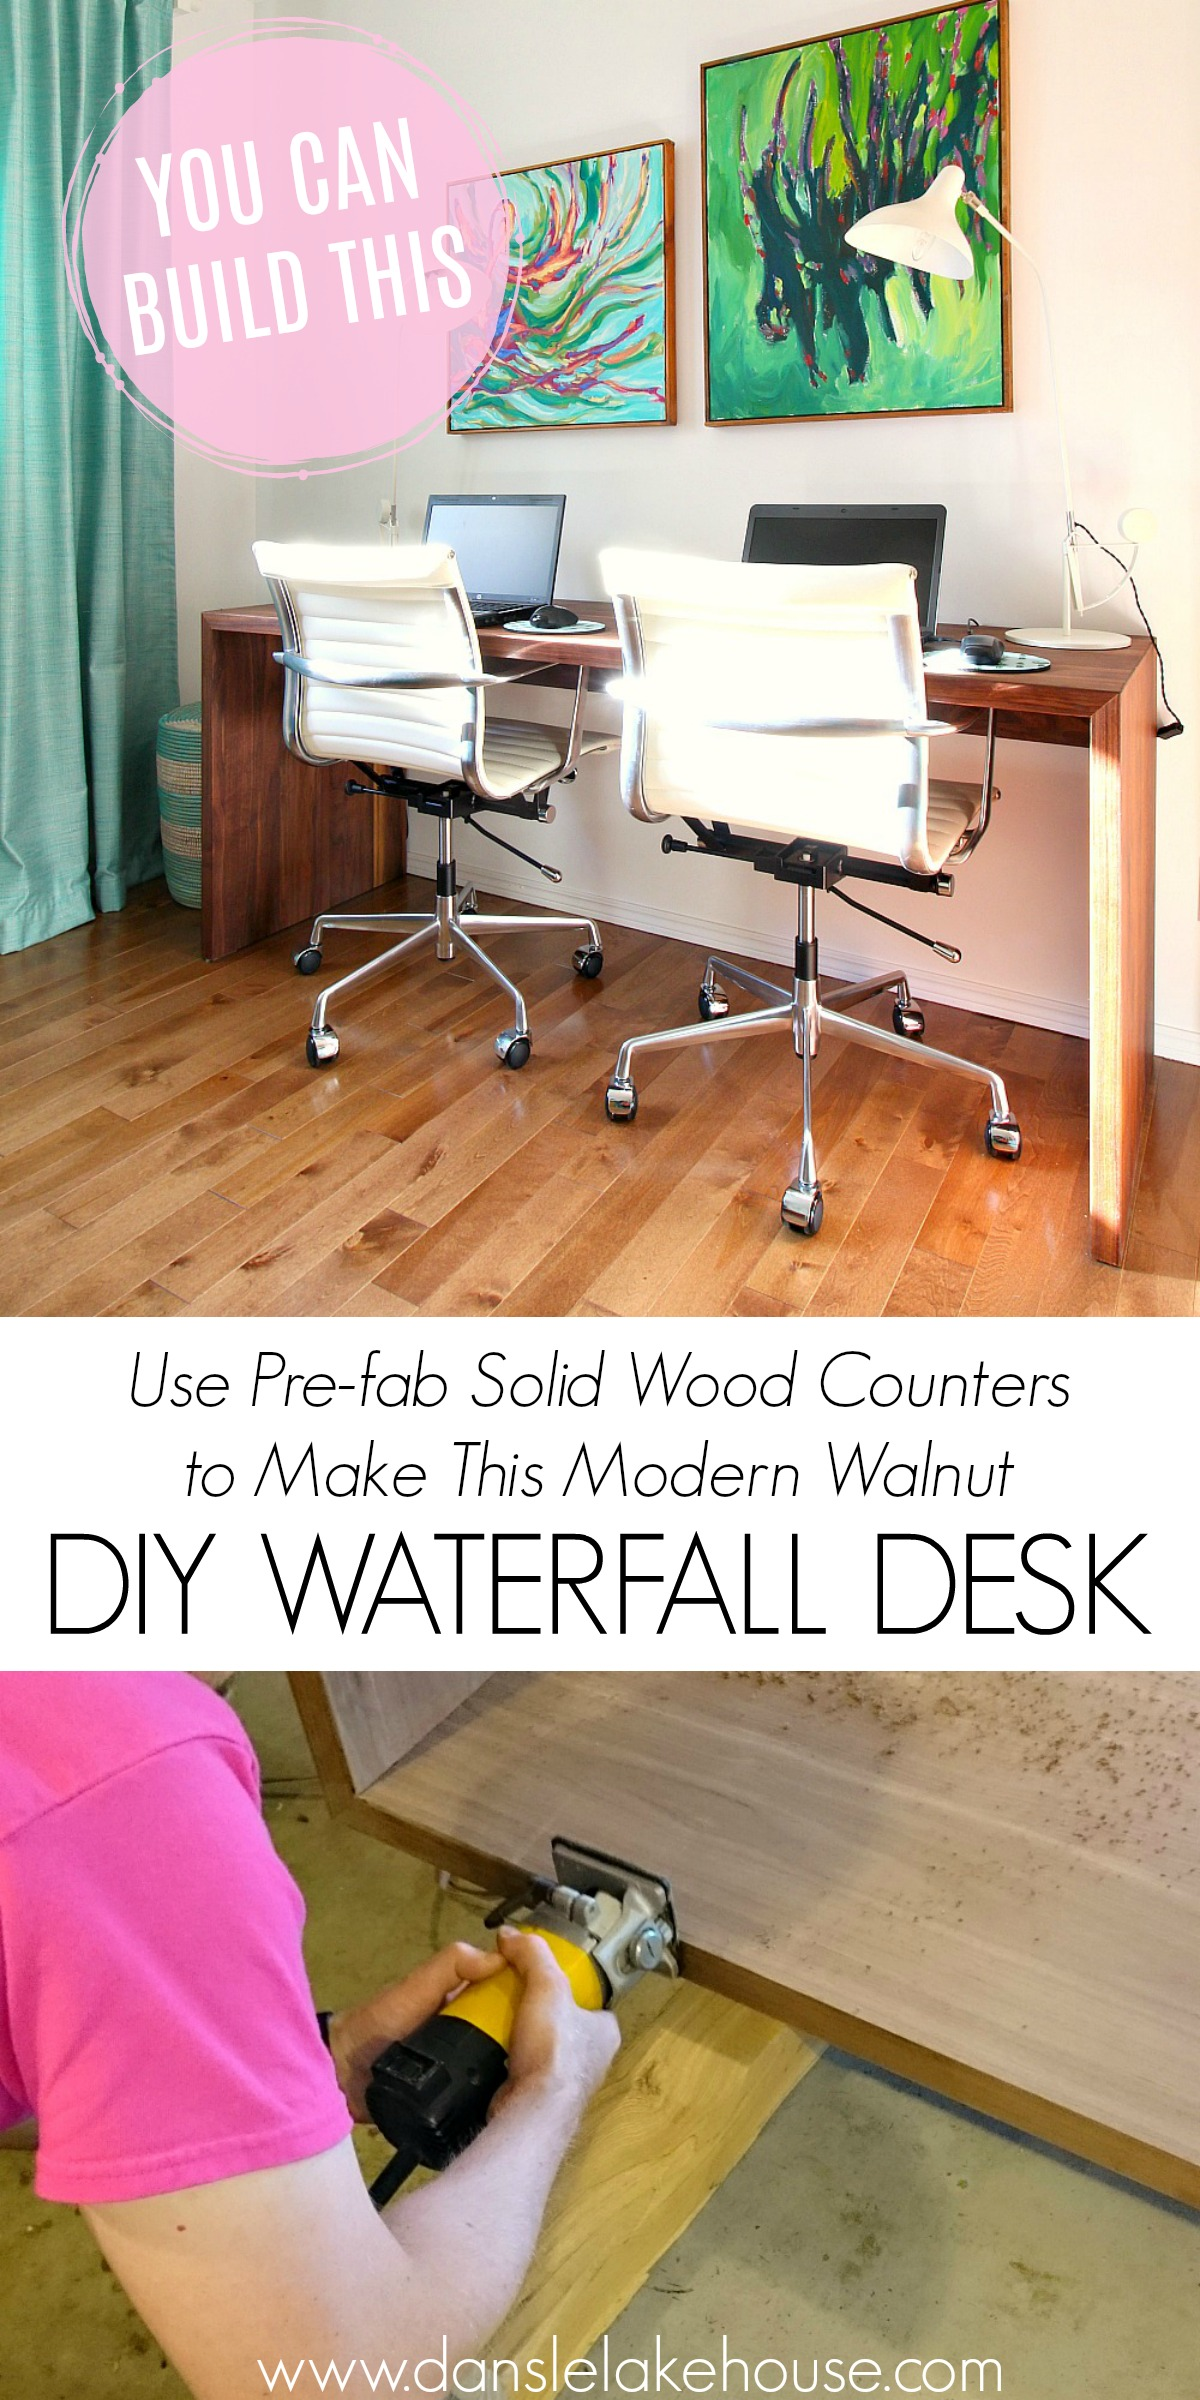 Learn How to Build This Solid Walnut DIY Waterfall Desk for Two | Dans le Lakehouse #workspace #woodworking #diyfurniture #walnut